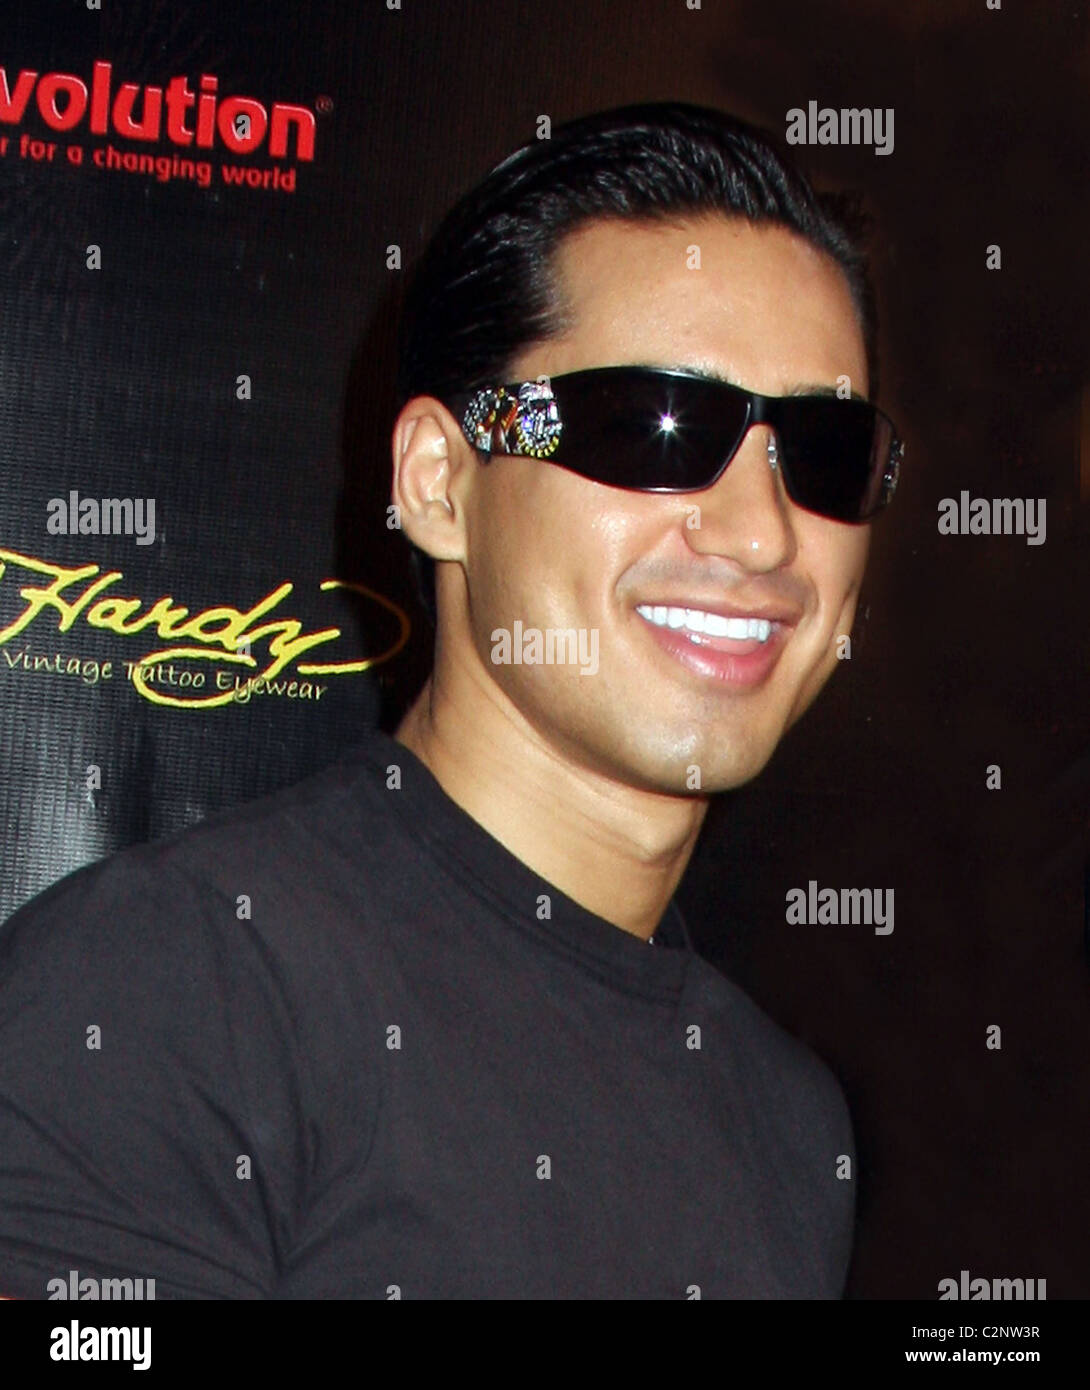 bff9977bed4e Mario Lopez appears at Vision East Expo for Revolution Eyewear New York City